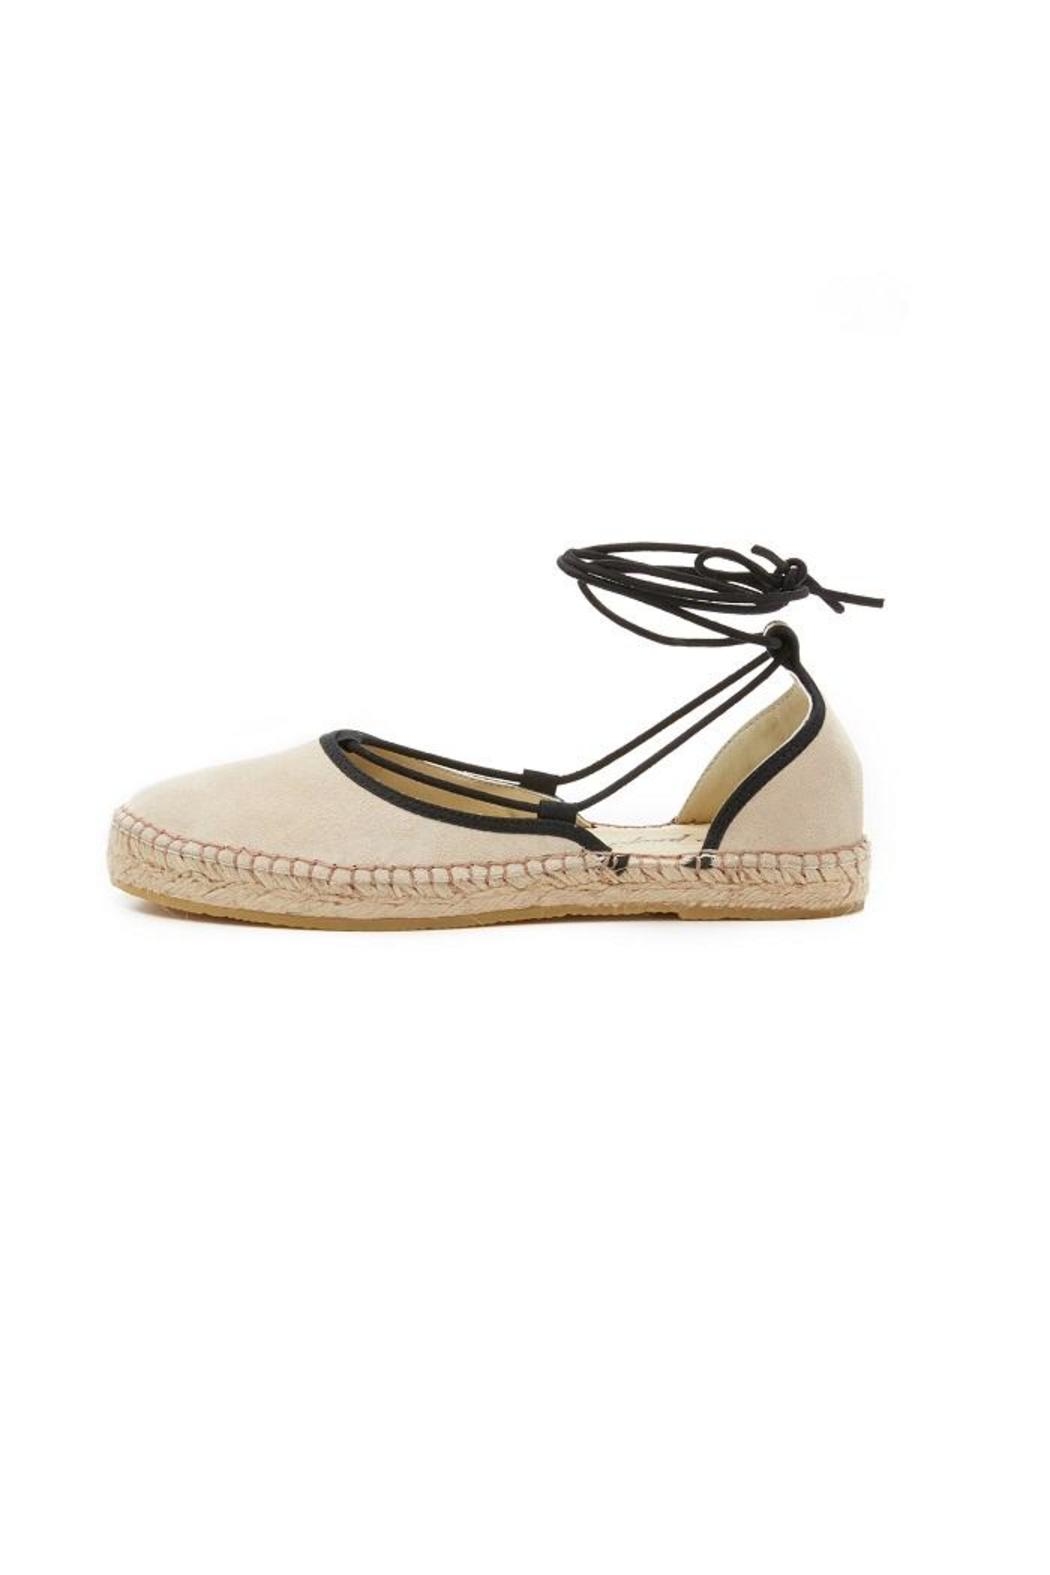 Free People Beige Flat Espadrille - Front Cropped Image